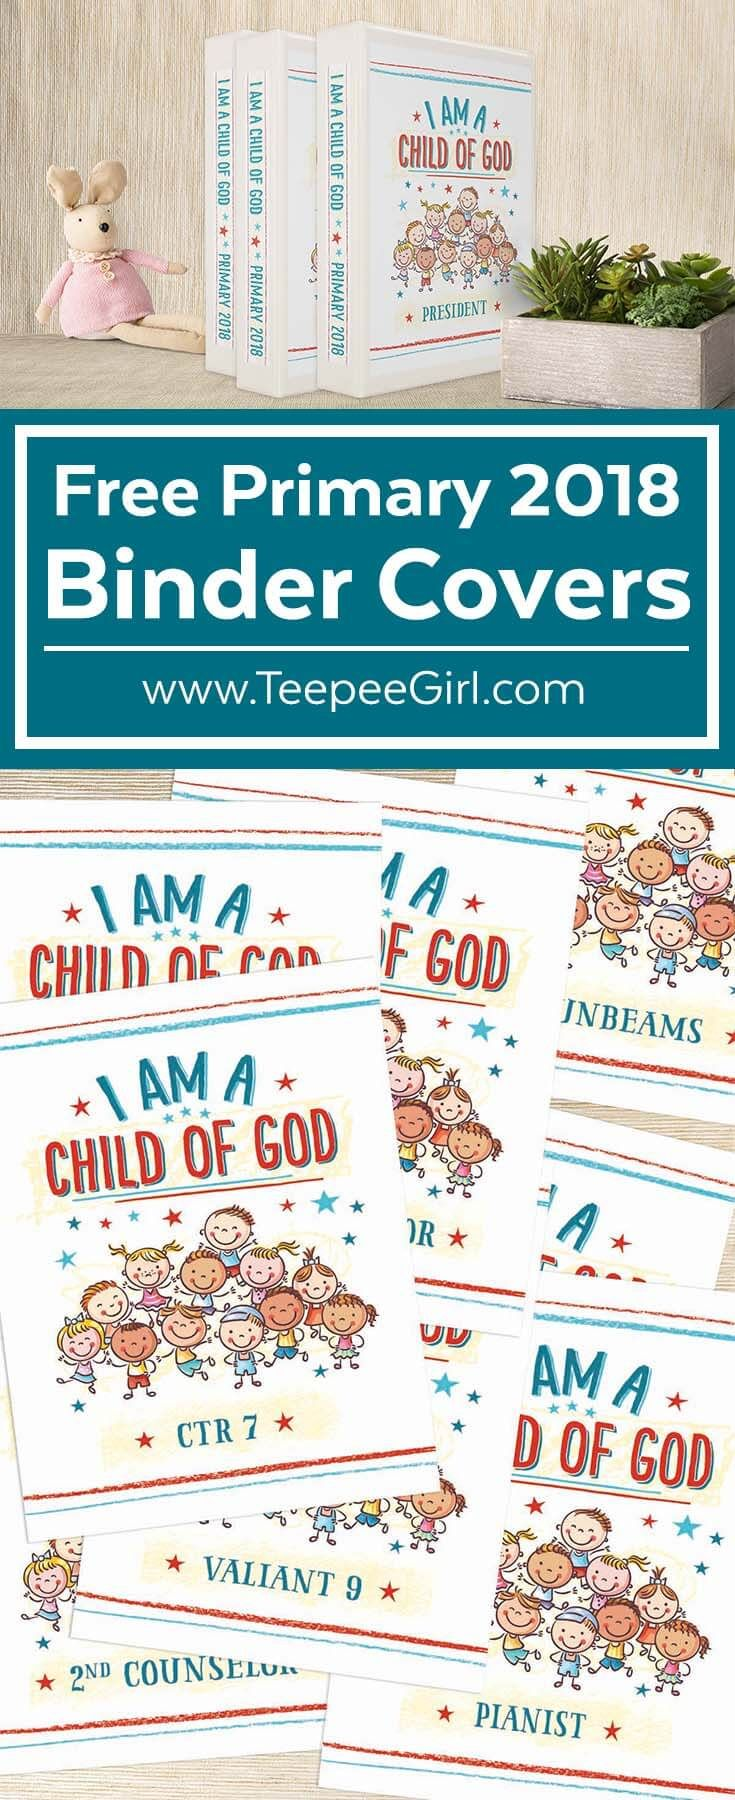 Free Primary 2018 Binder Covers \